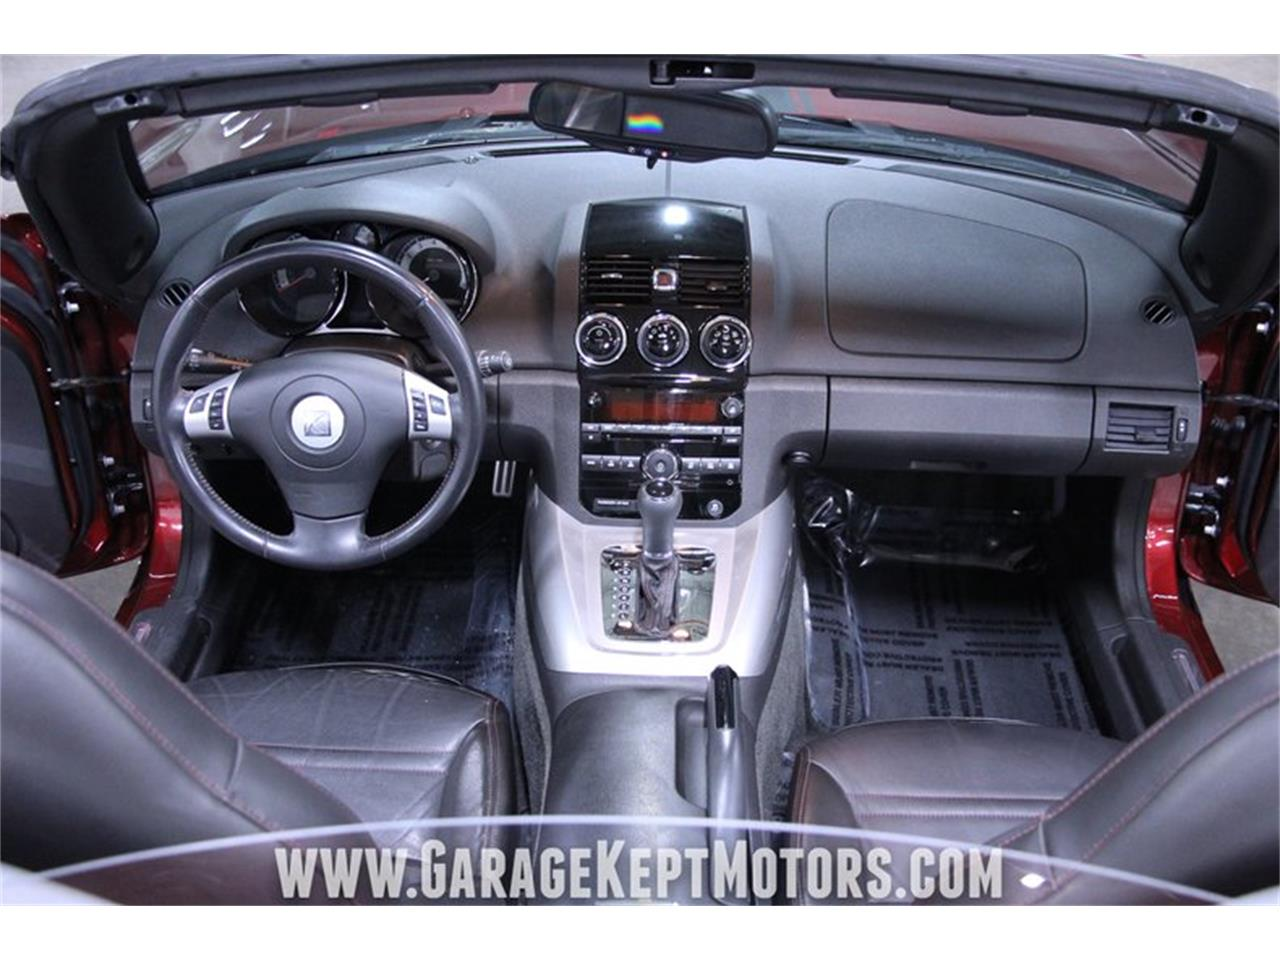 2009 Saturn Sky for sale in Grand Rapids, MI – photo 65